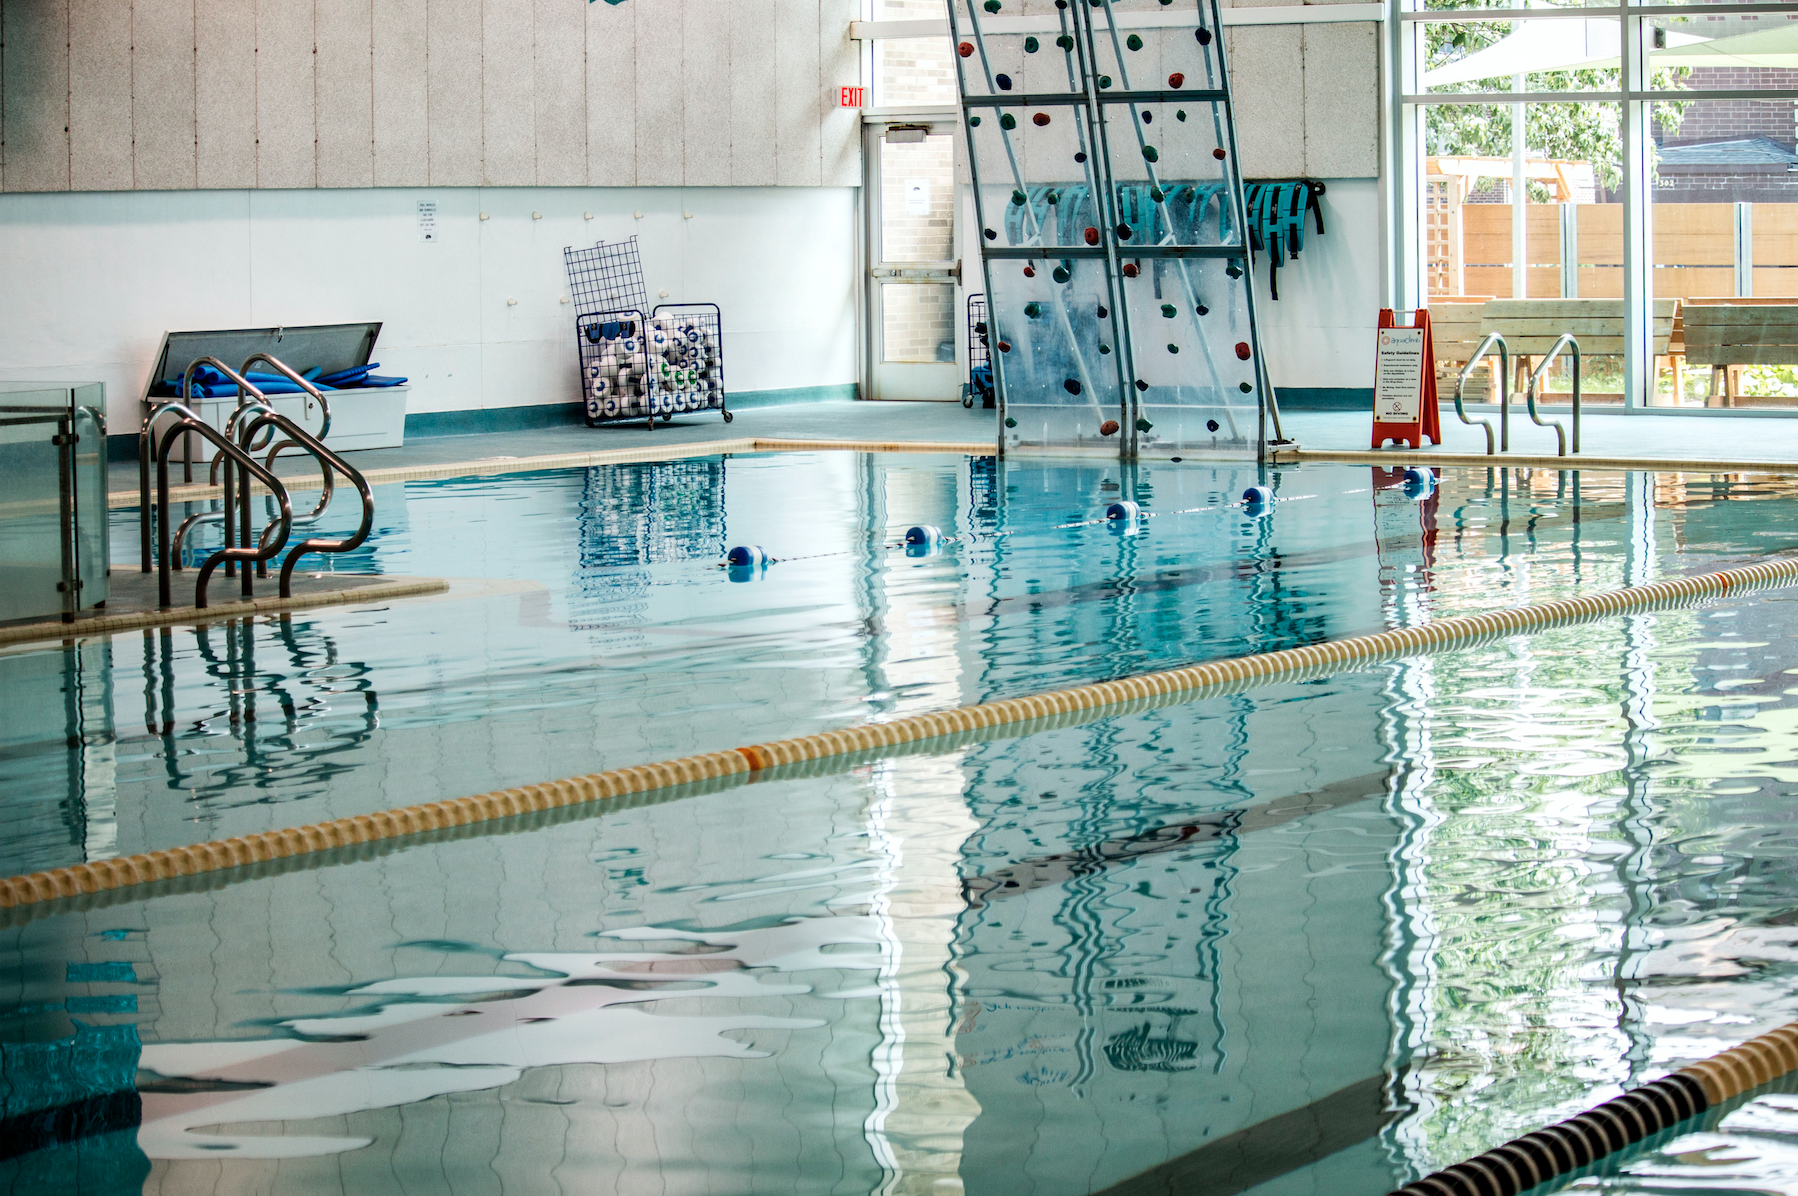 The Robert A. Lee Recreation Center pool is seen on July 25, 2018. (Katina Zentz/The Daily Iowan)